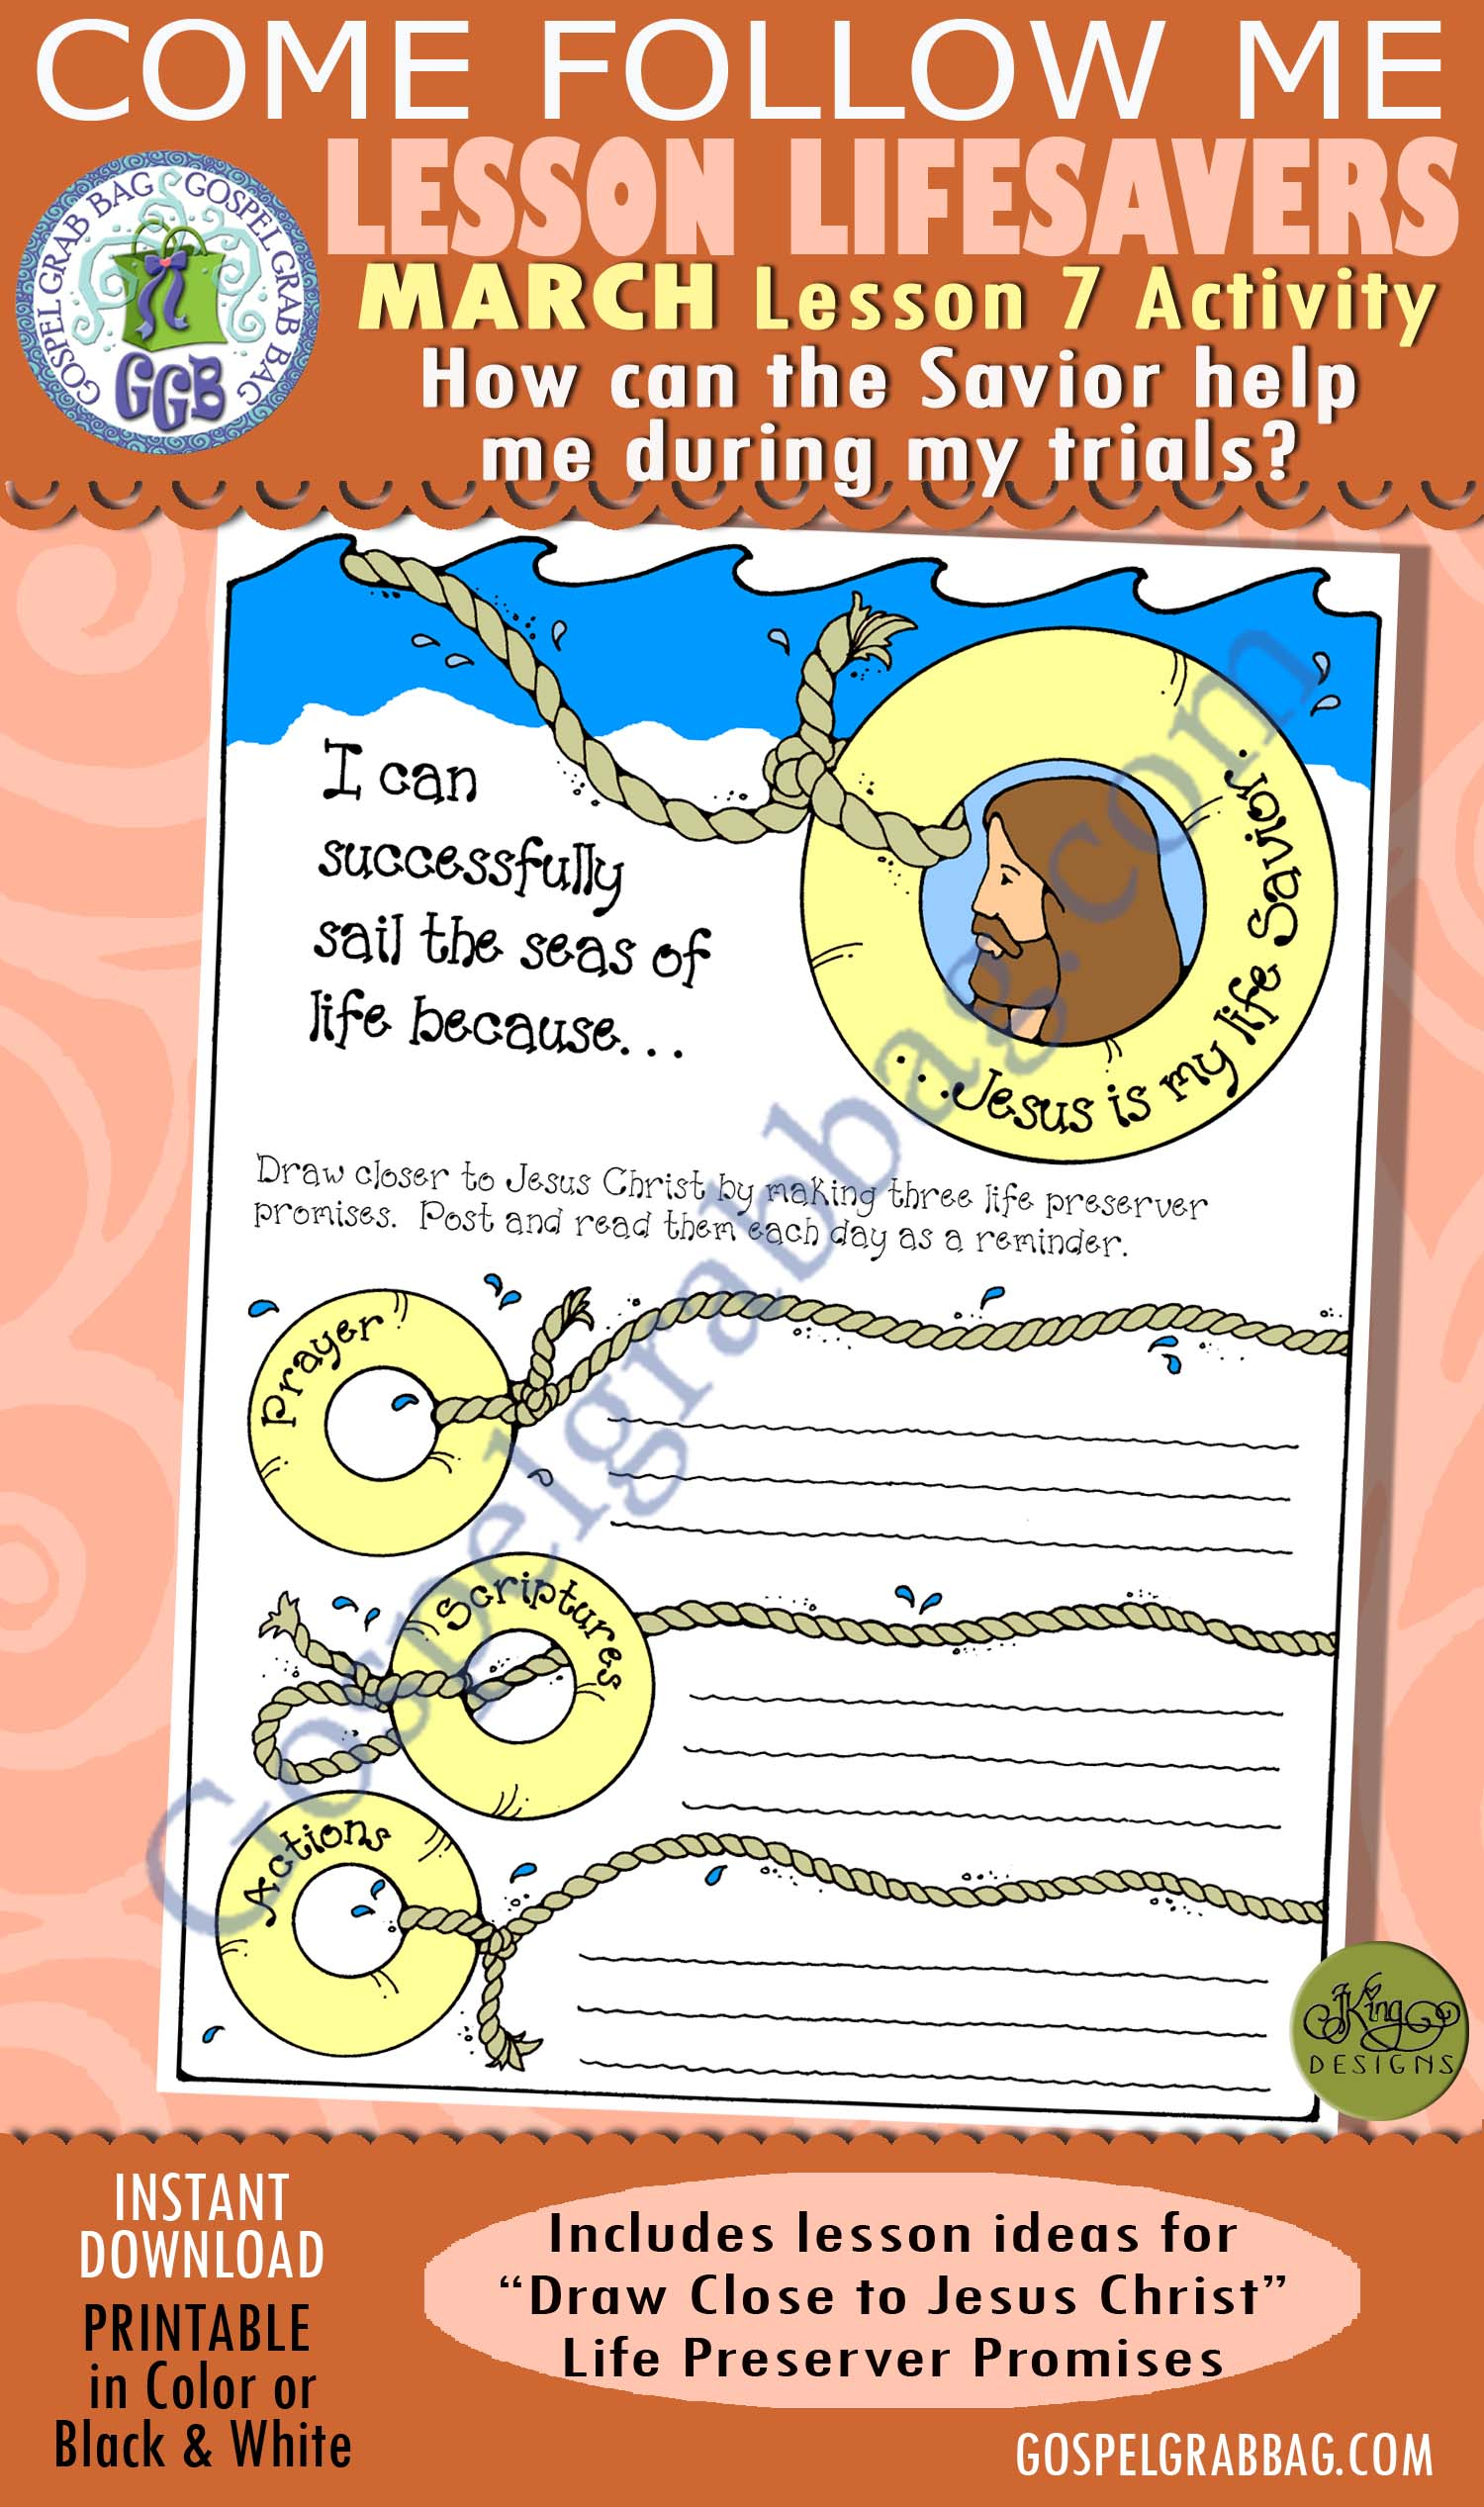 """$1.75 MARCH Lesson 7 Come Follow Me """"How can the Savior help me during my trials?"""" ACTIVITY: Draw Close to Jesus Christ - Life Preserver Promises, Young Women handouts, GospelGrabBag.com"""